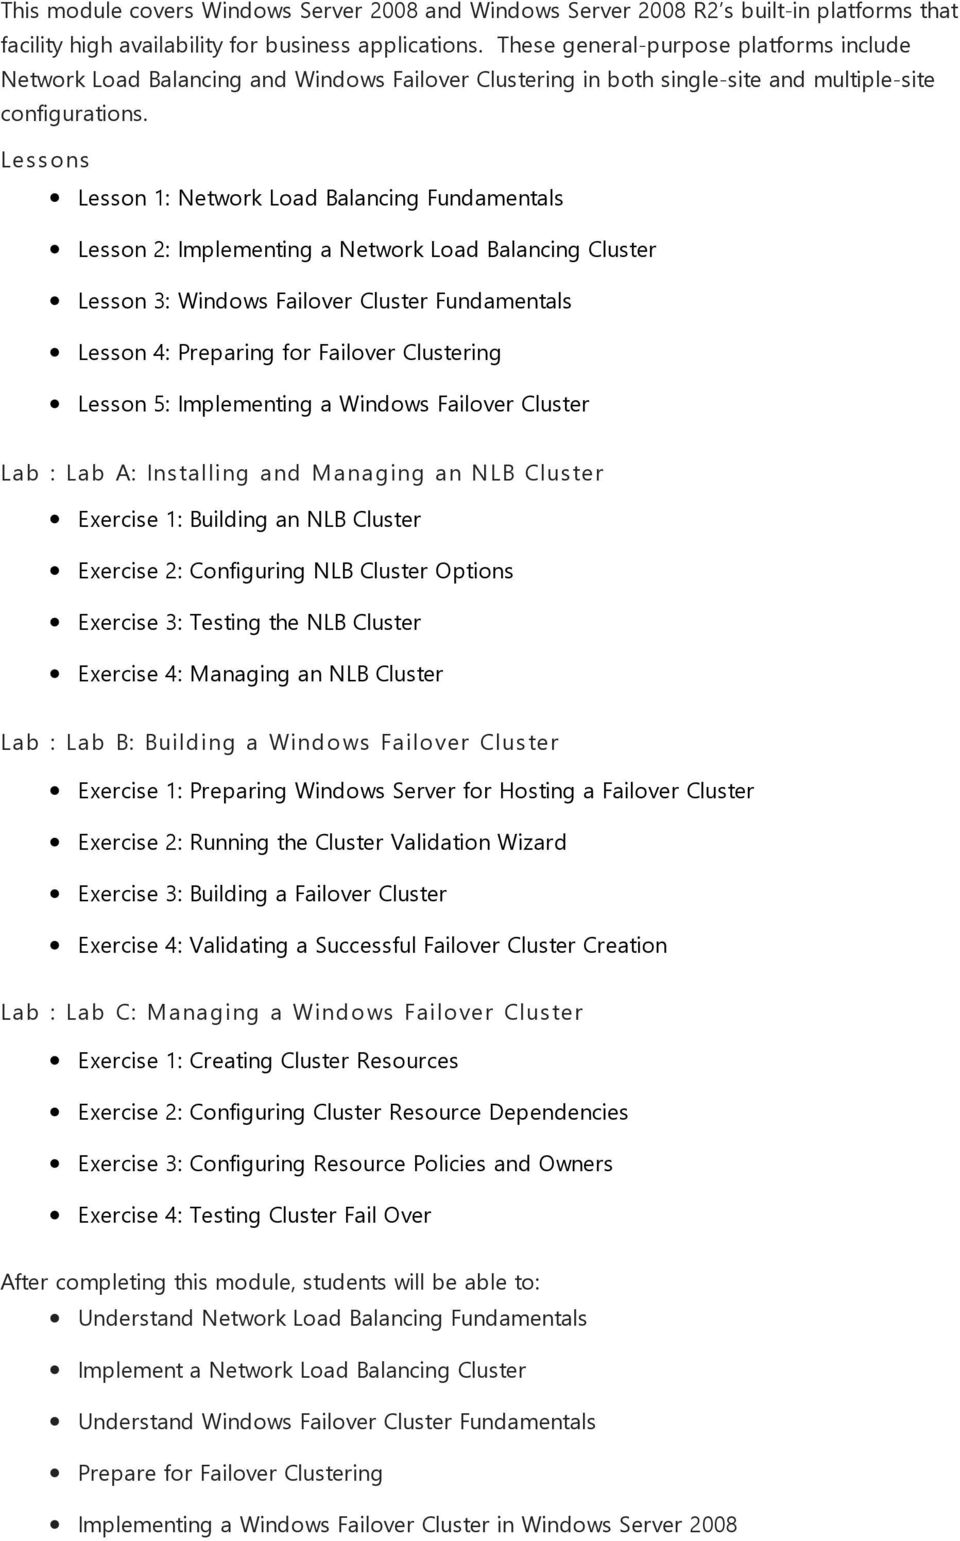 Lesson 1: Network Load Balancing Fundamentals Lesson 2: Implementing a Network Load Balancing Cluster Lesson 3: Windows Failover Cluster Fundamentals Lesson 4: Preparing for Failover Clustering